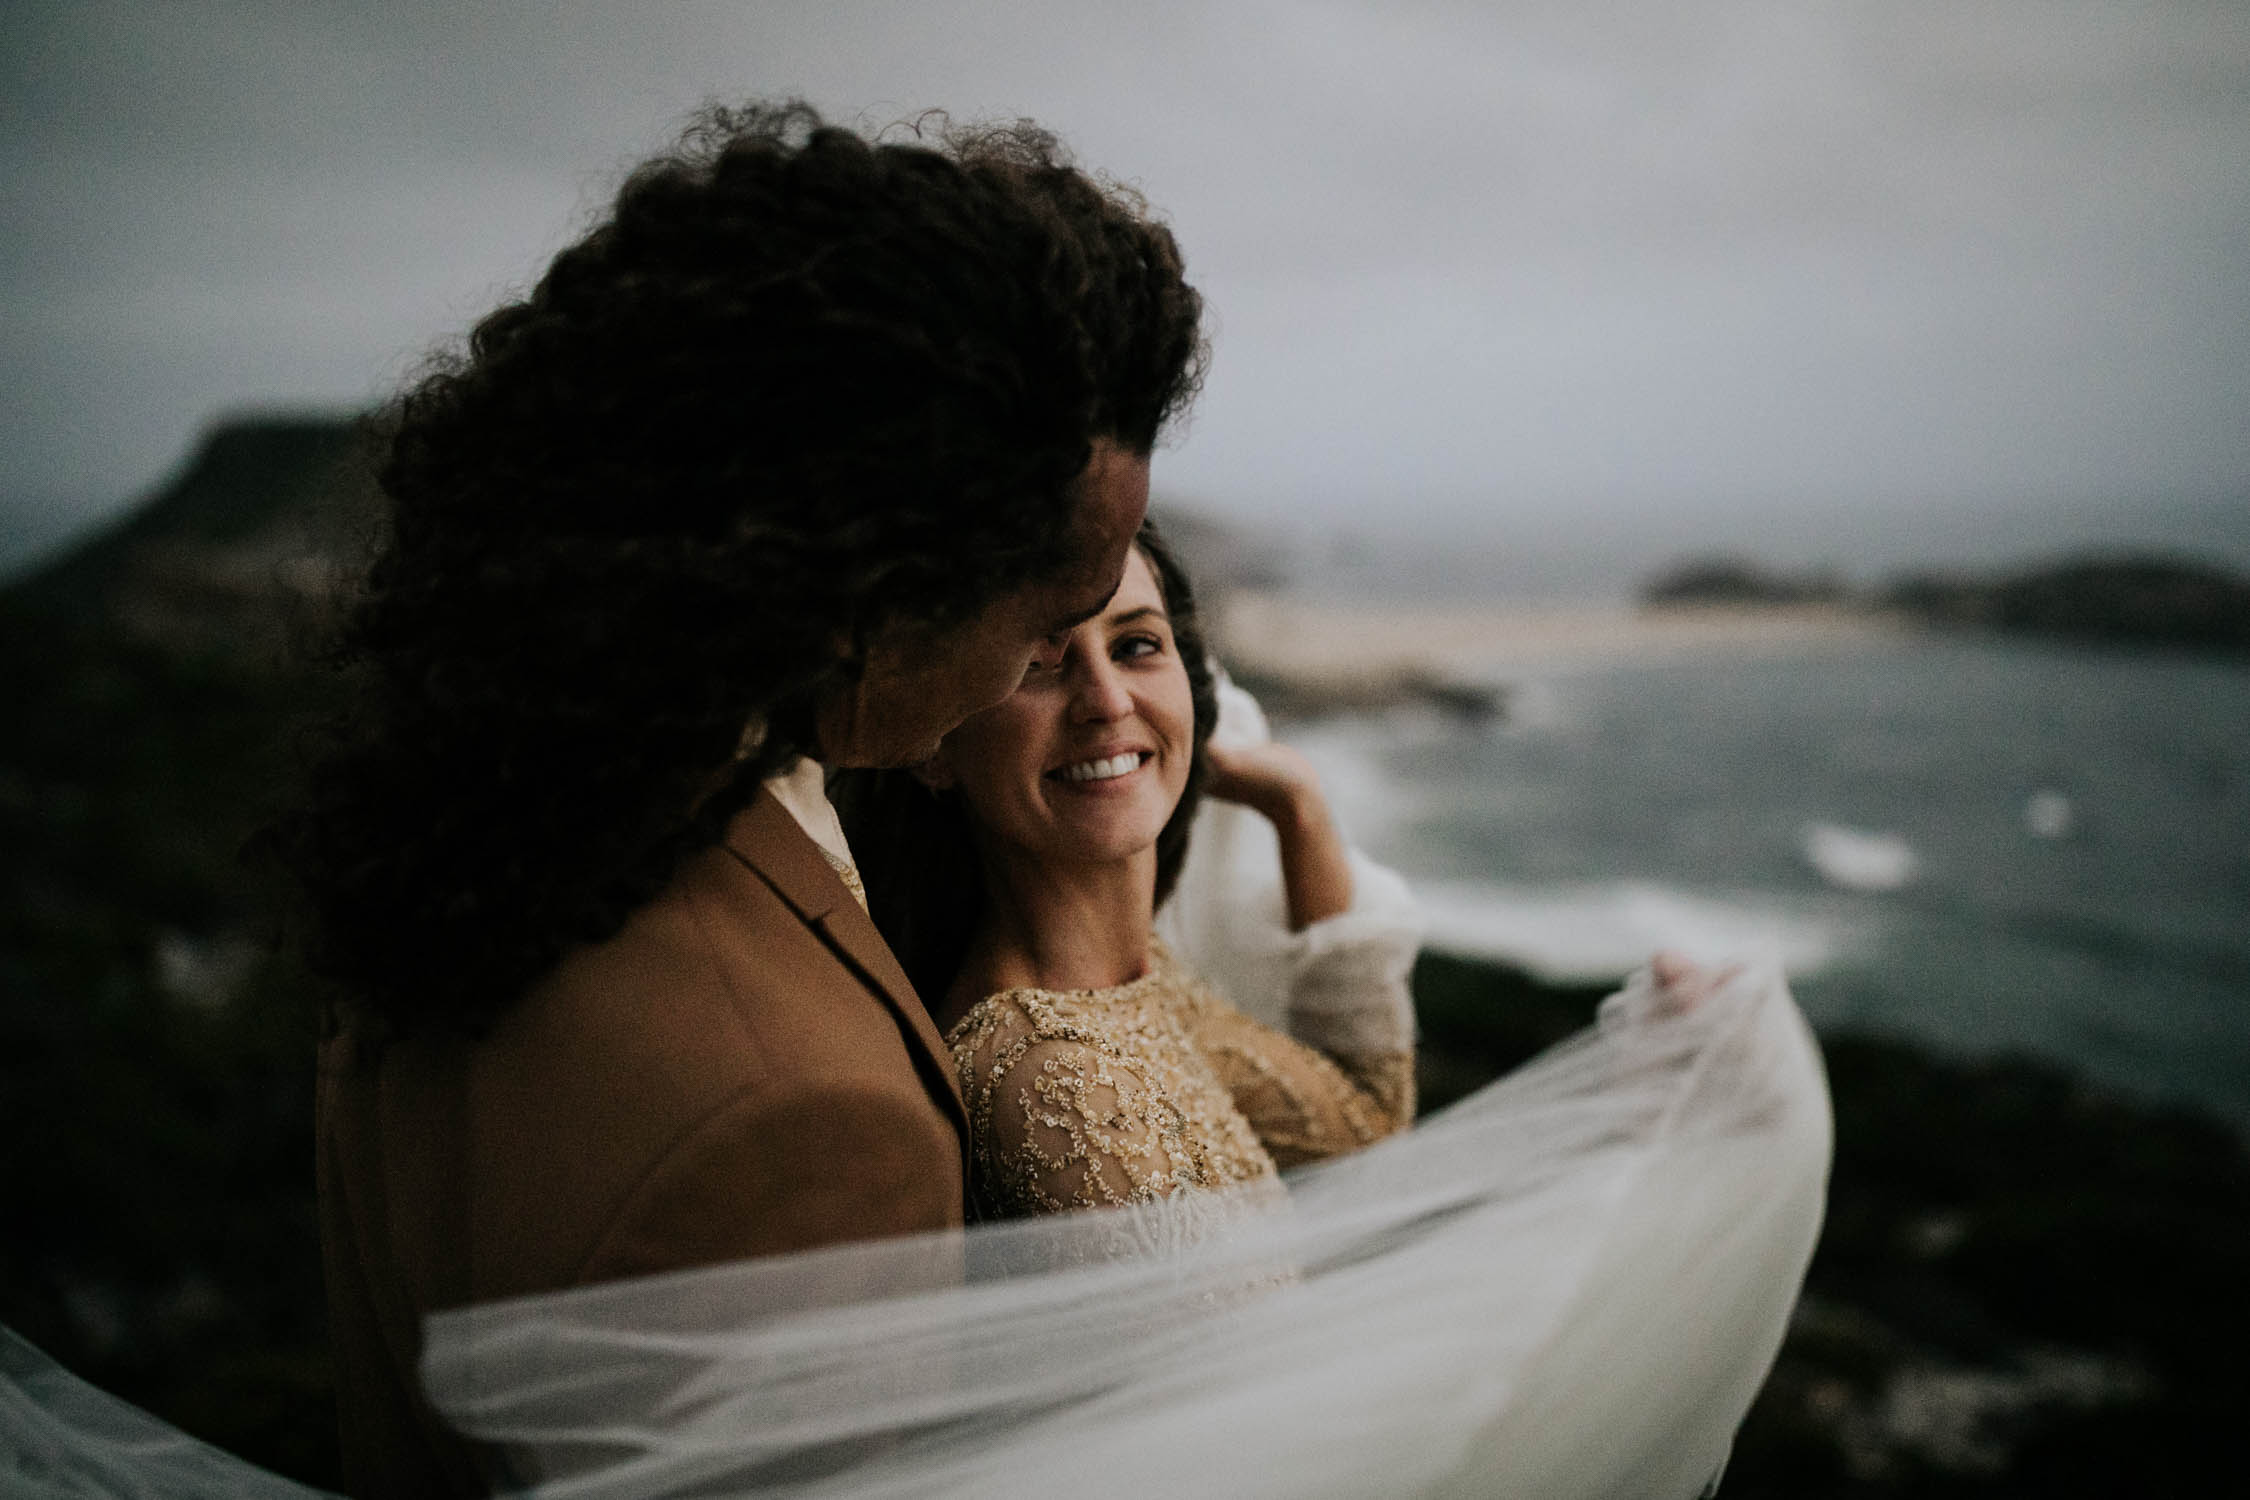 Wild and epic different wedding photography that's unstaged